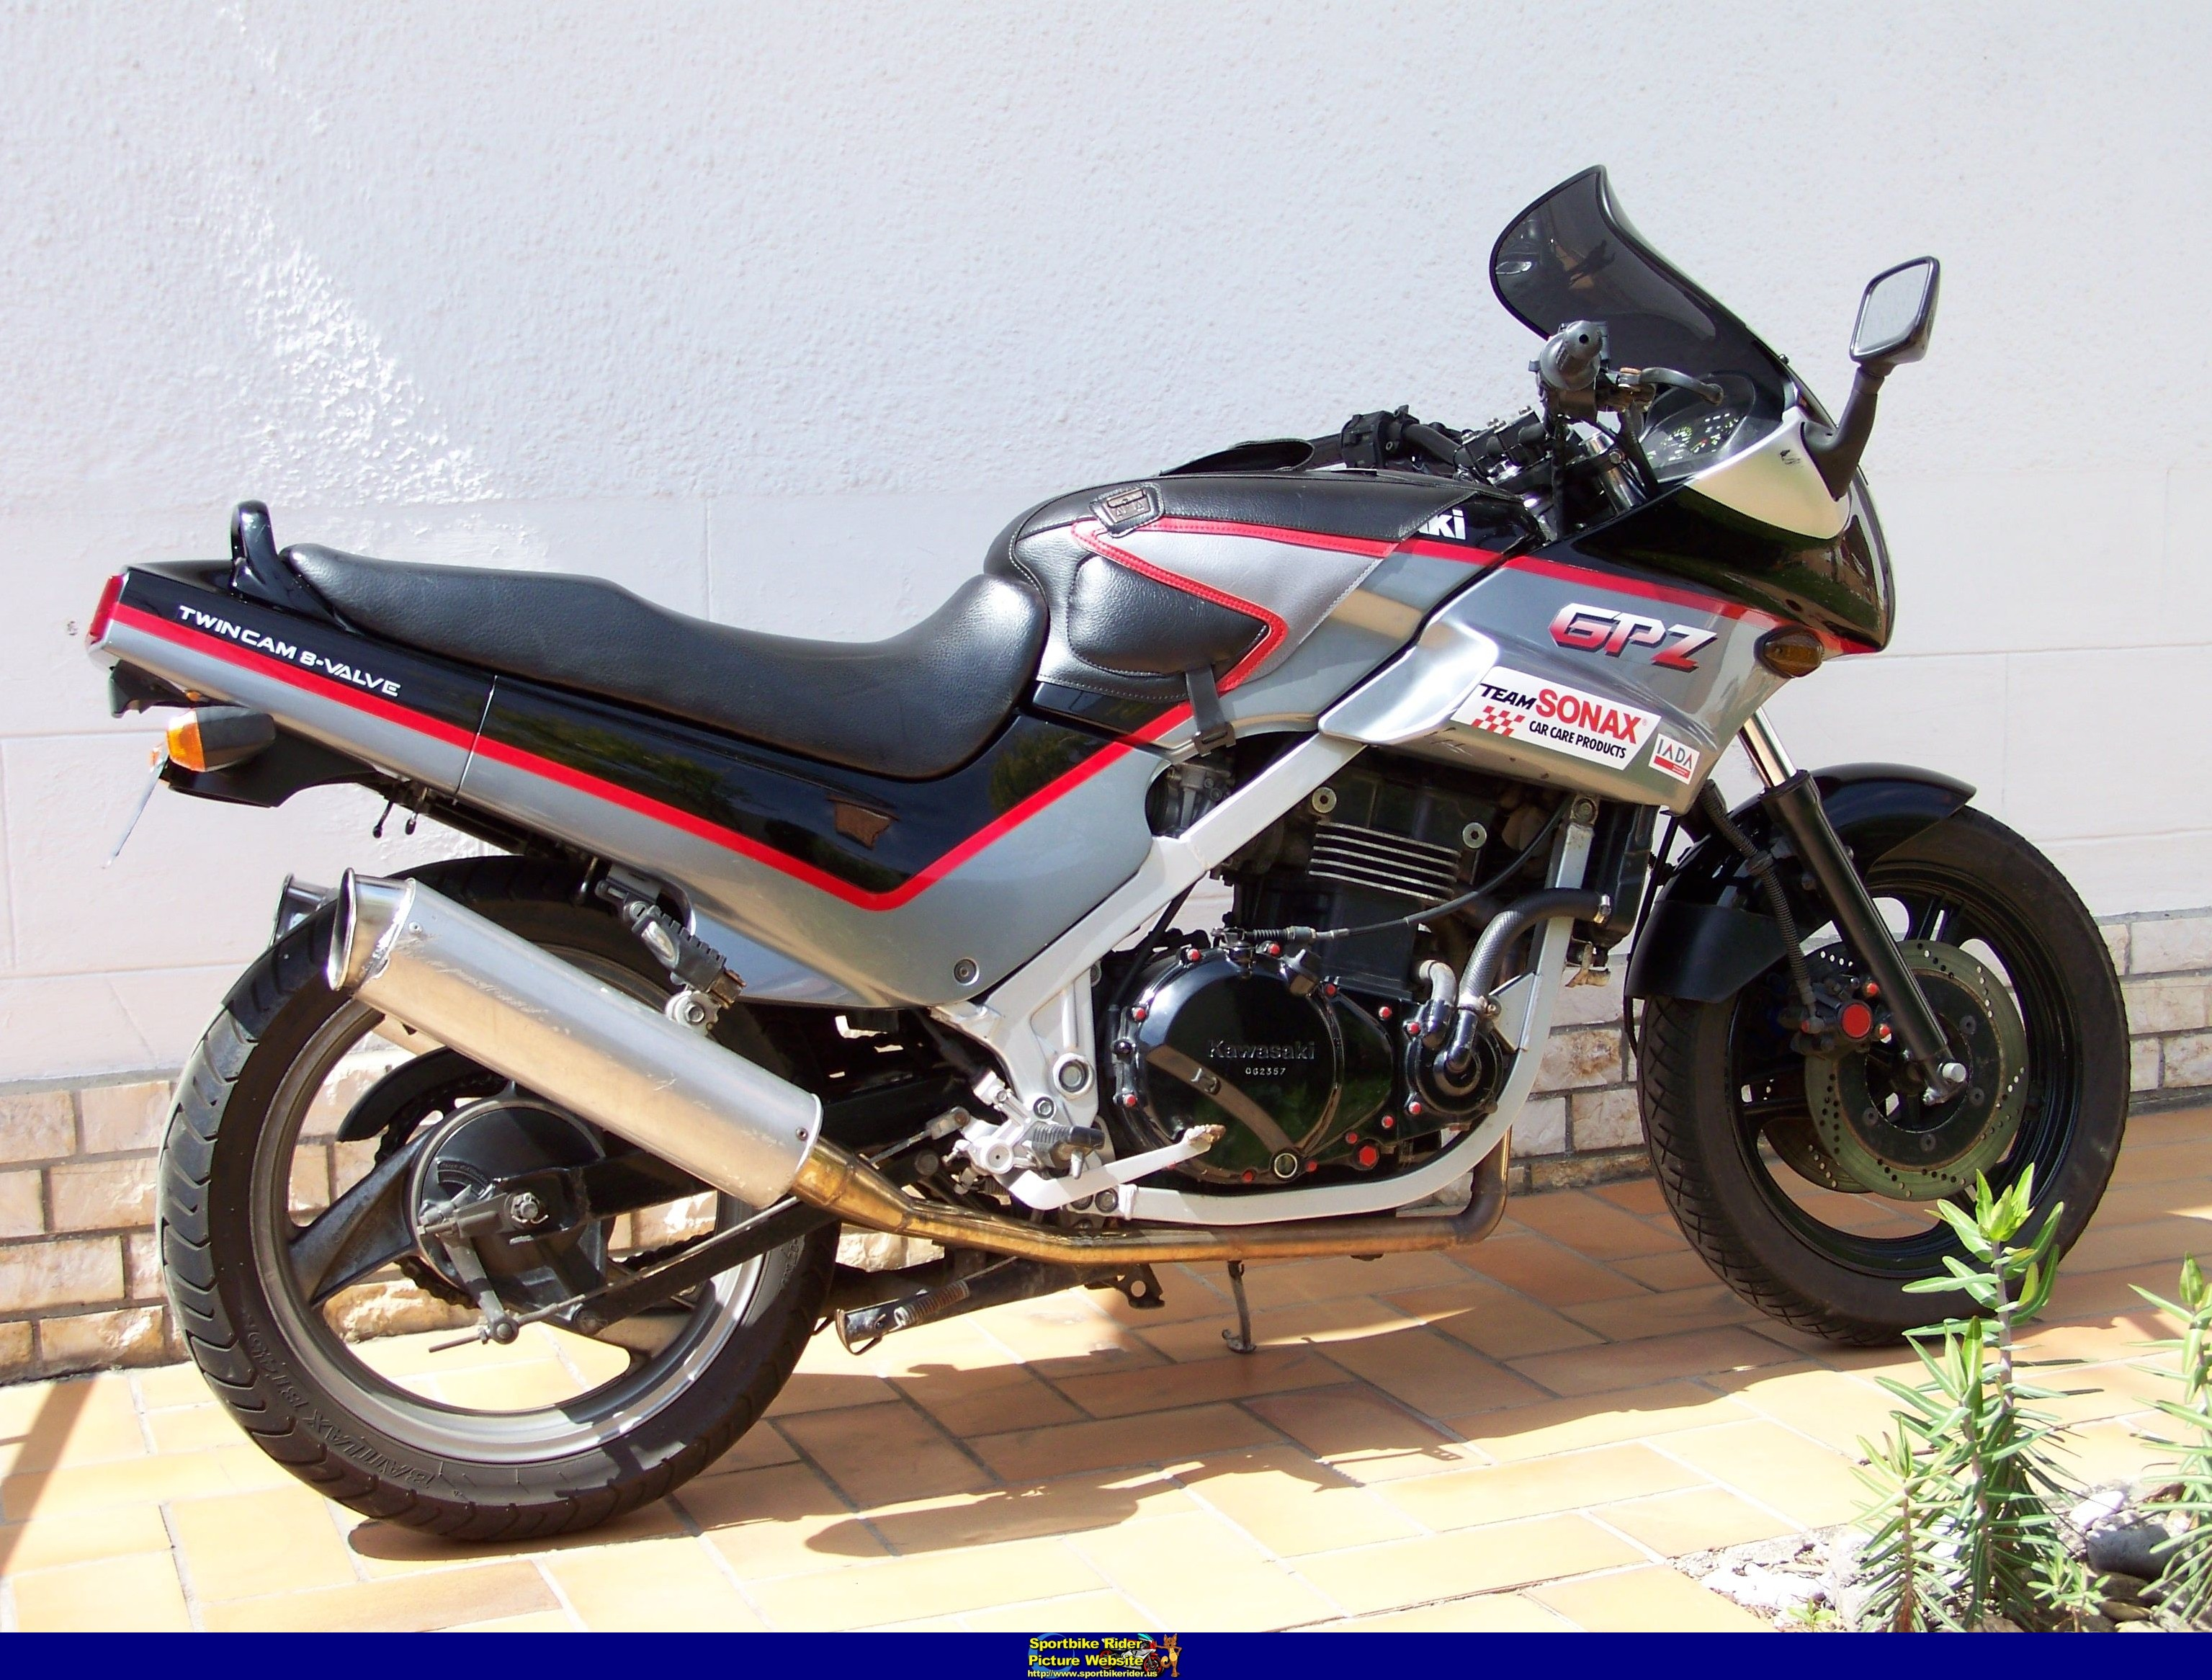 Kawasaki GPZ 500 S (reduced effect) 1988 images #83741